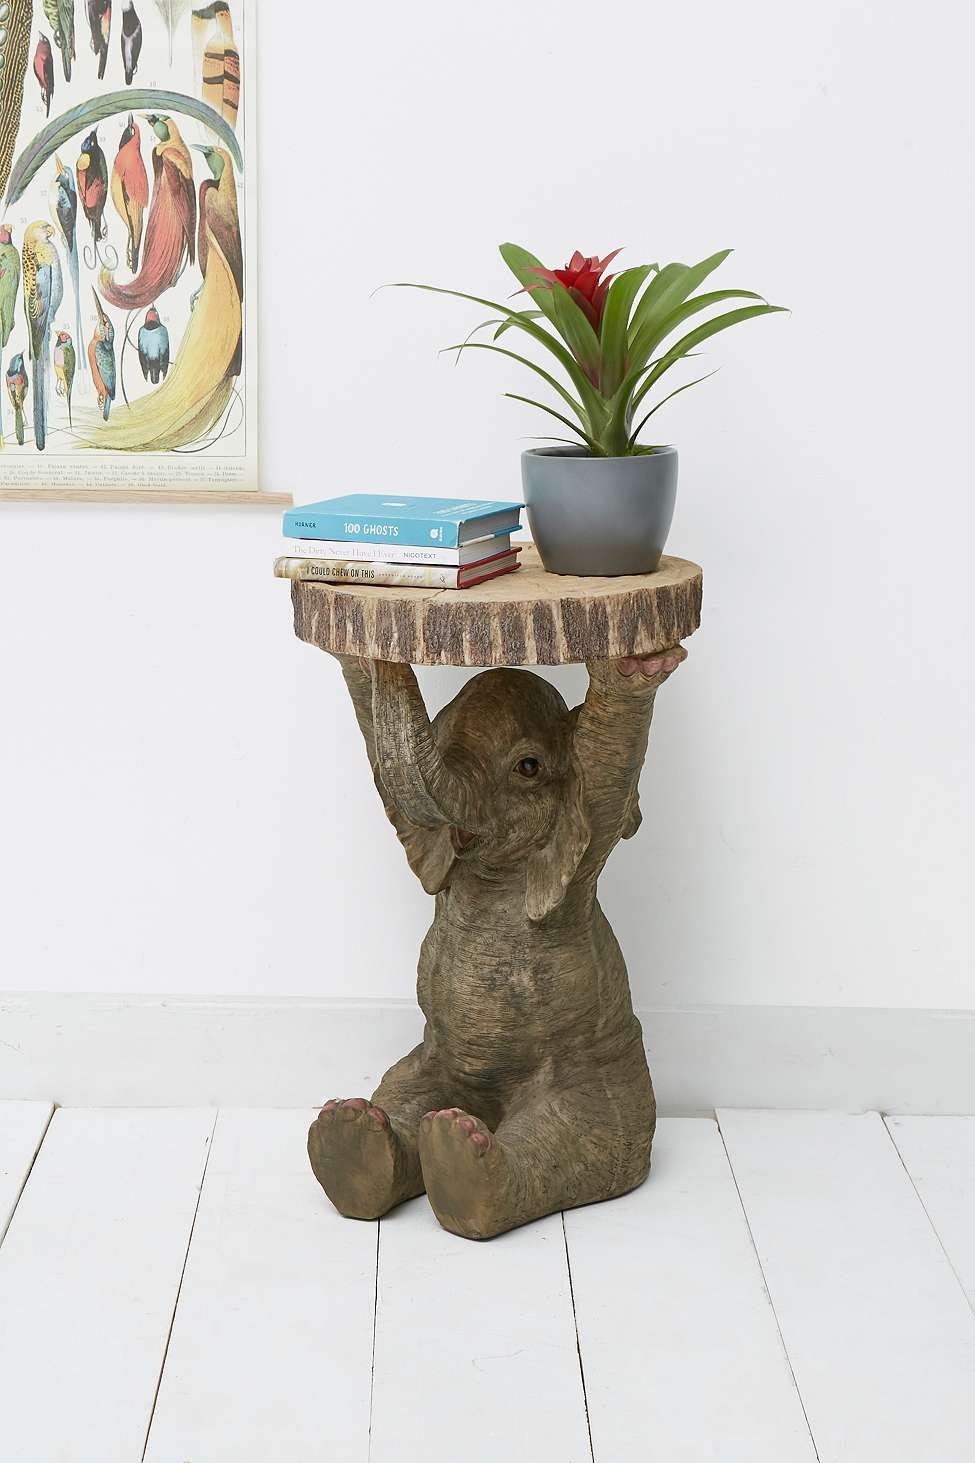 Elephant Carved Table Unique And Quirky Gift Ideas Any Odd Person Will Appreciate (Fun Gifts!)